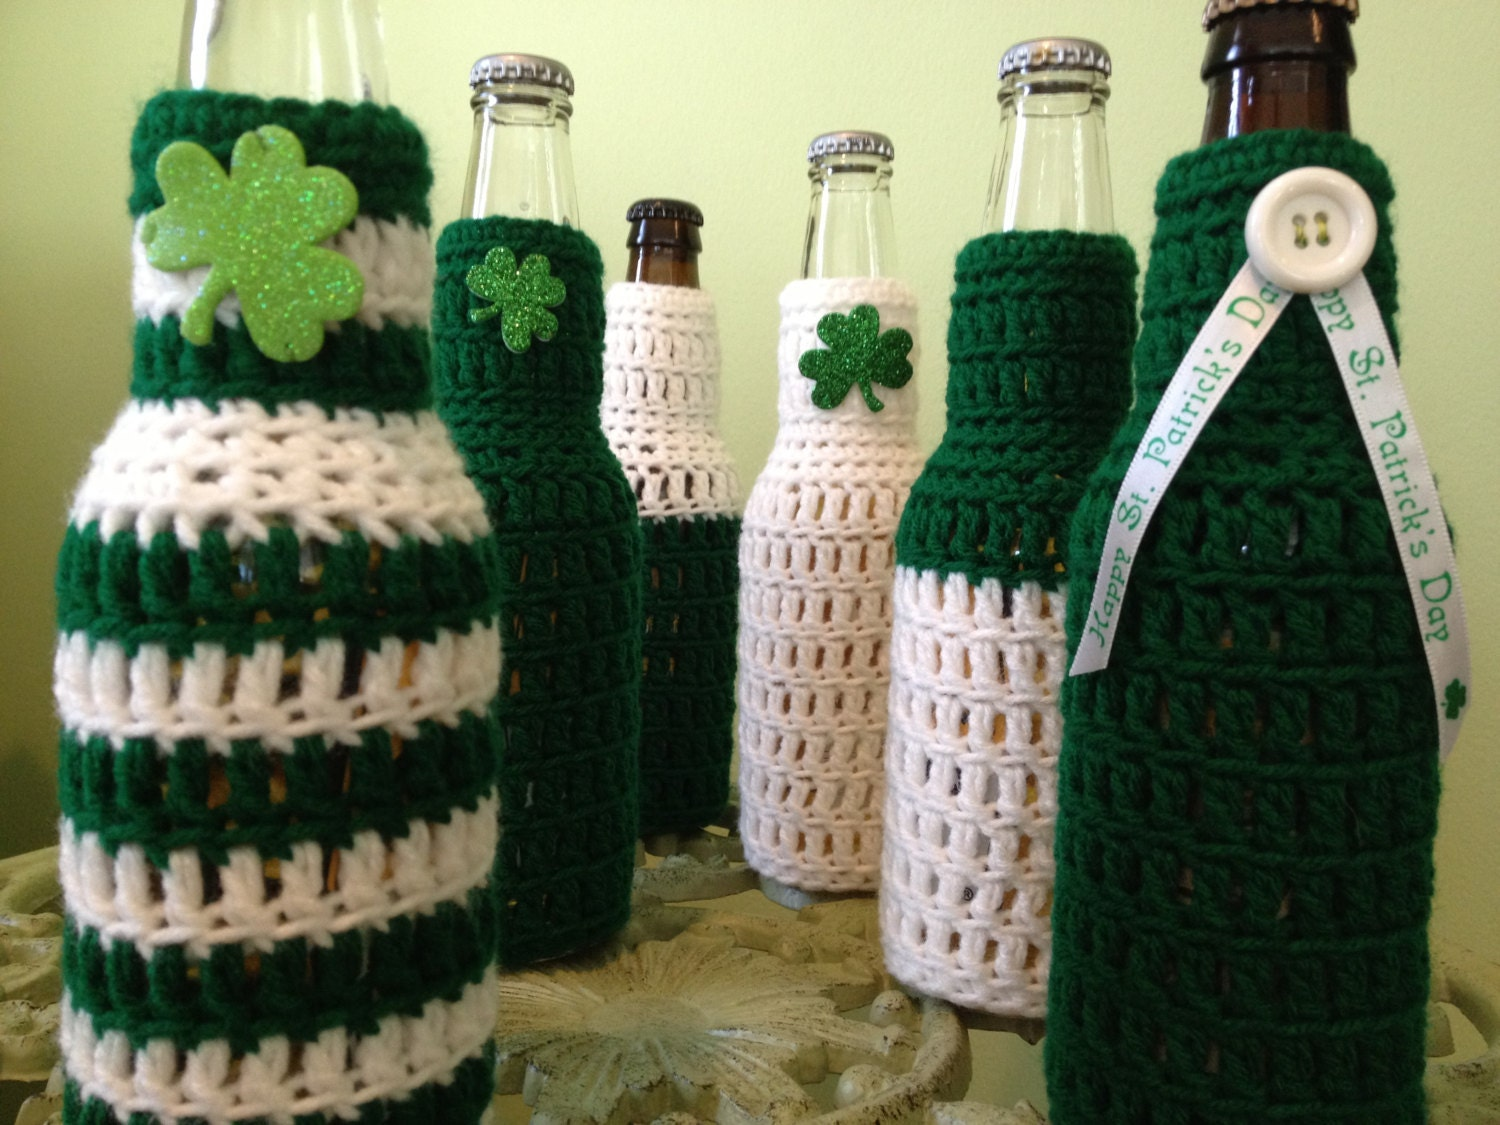 St. Patrick's Day Beer Koozie, Party Favors, Crocheted Beer or Soda Bottle Koozie, Ugly Sweater, Made to Order for Your Party - BeachDaisyJewelry